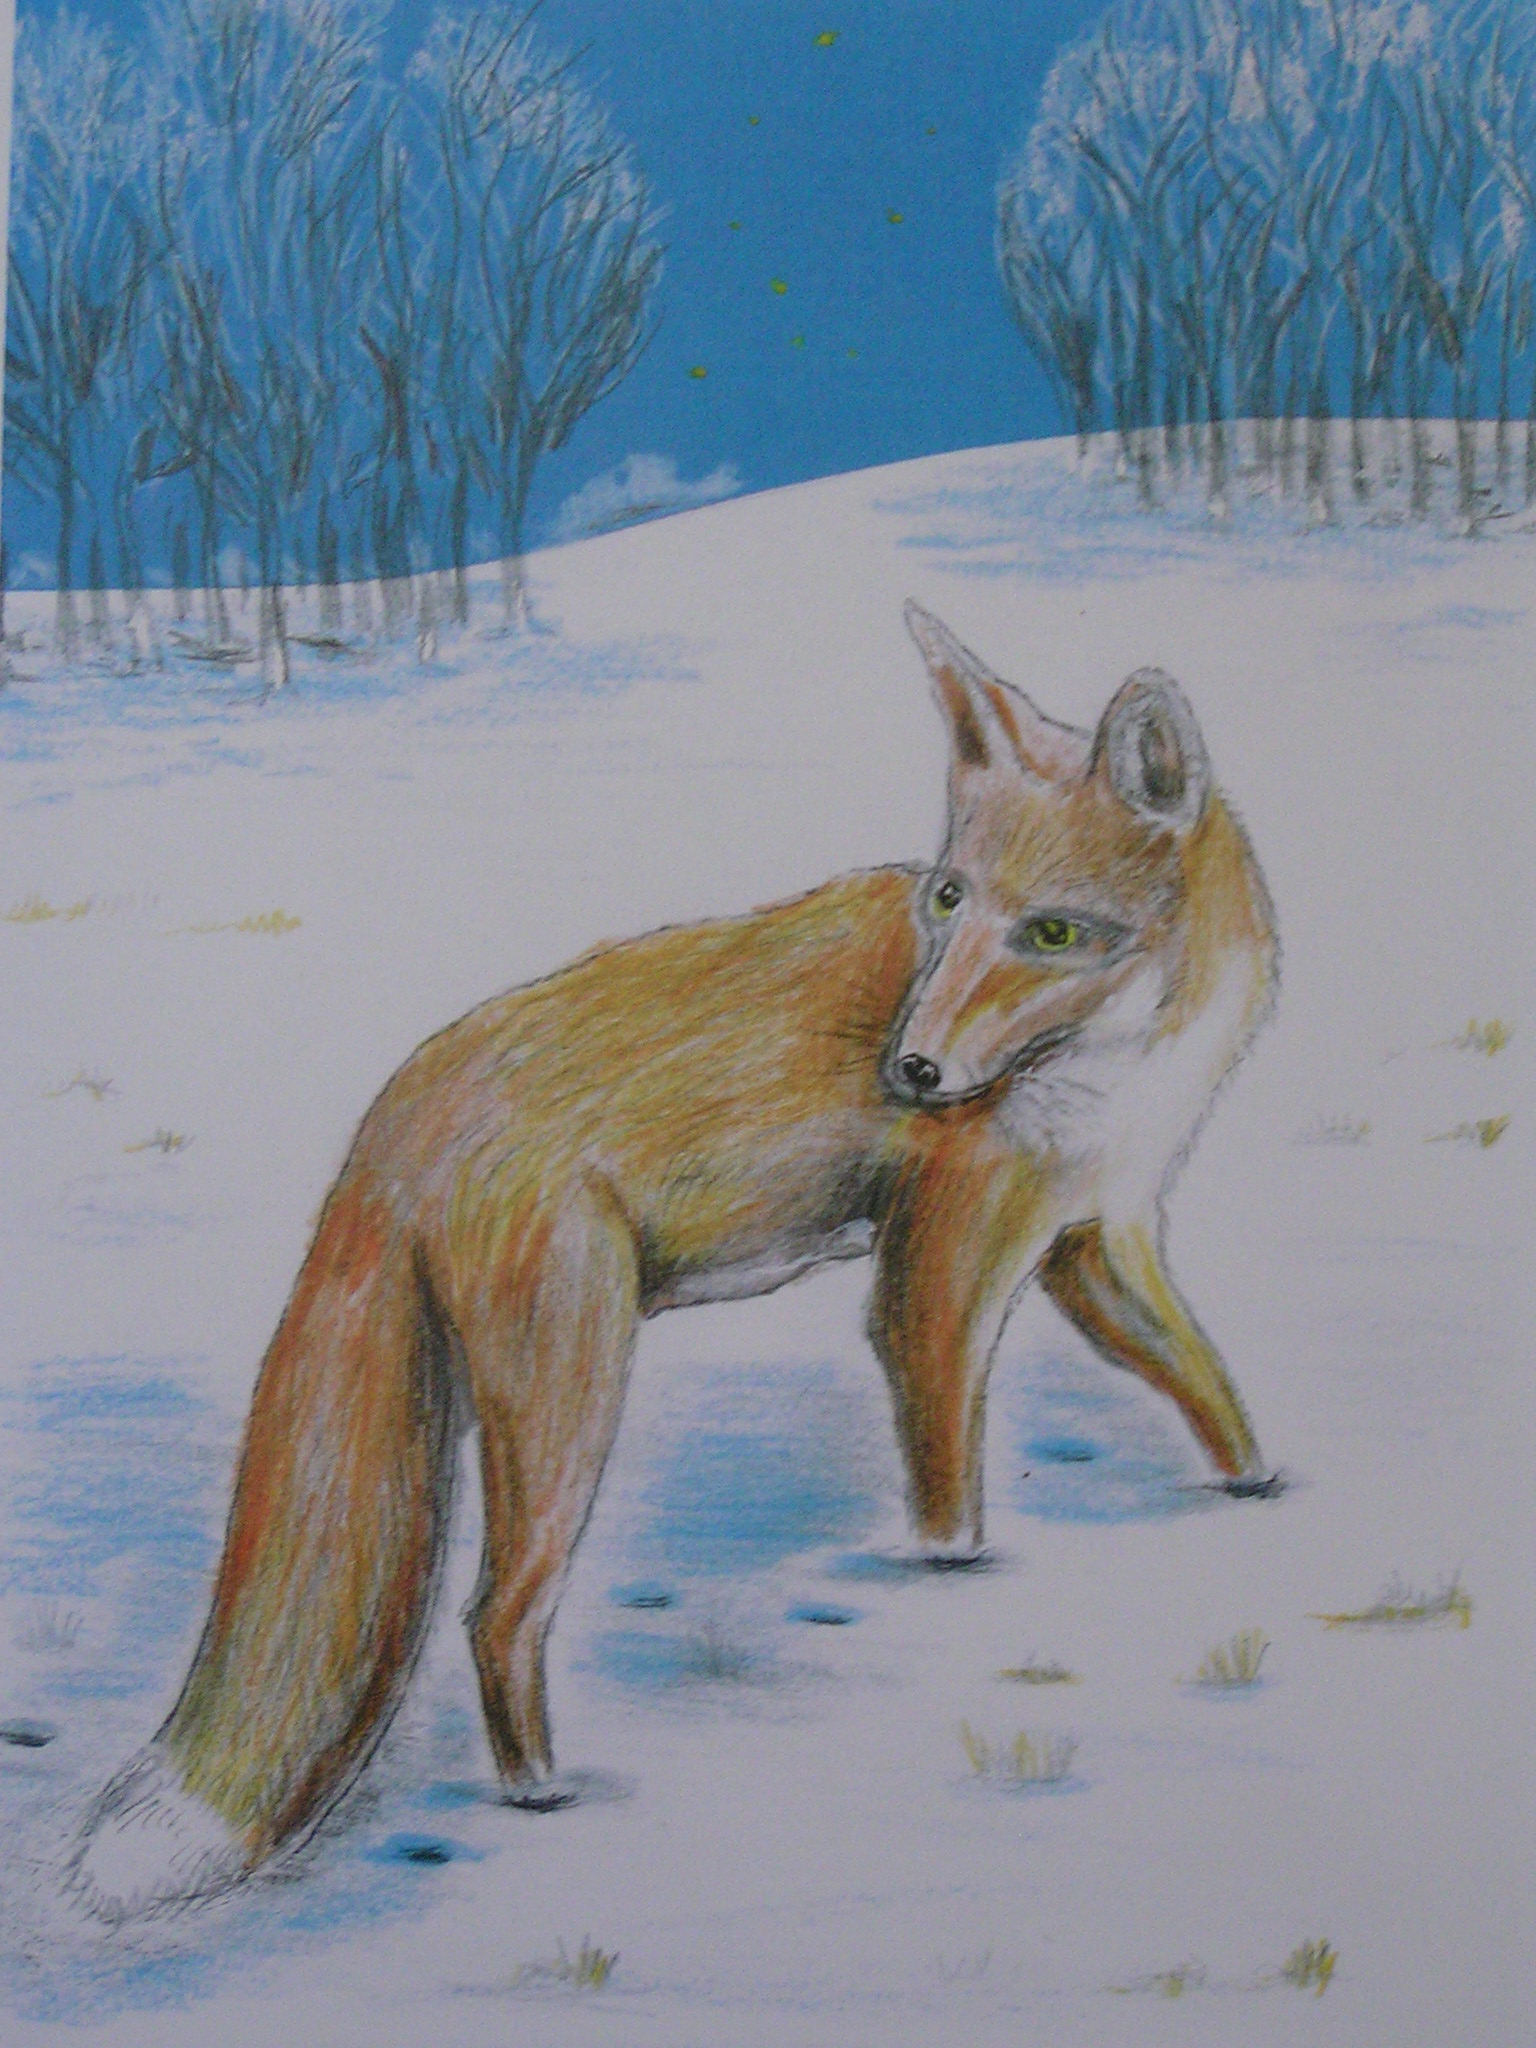 The urban fox is an emotive subject - you either love them or loathe them